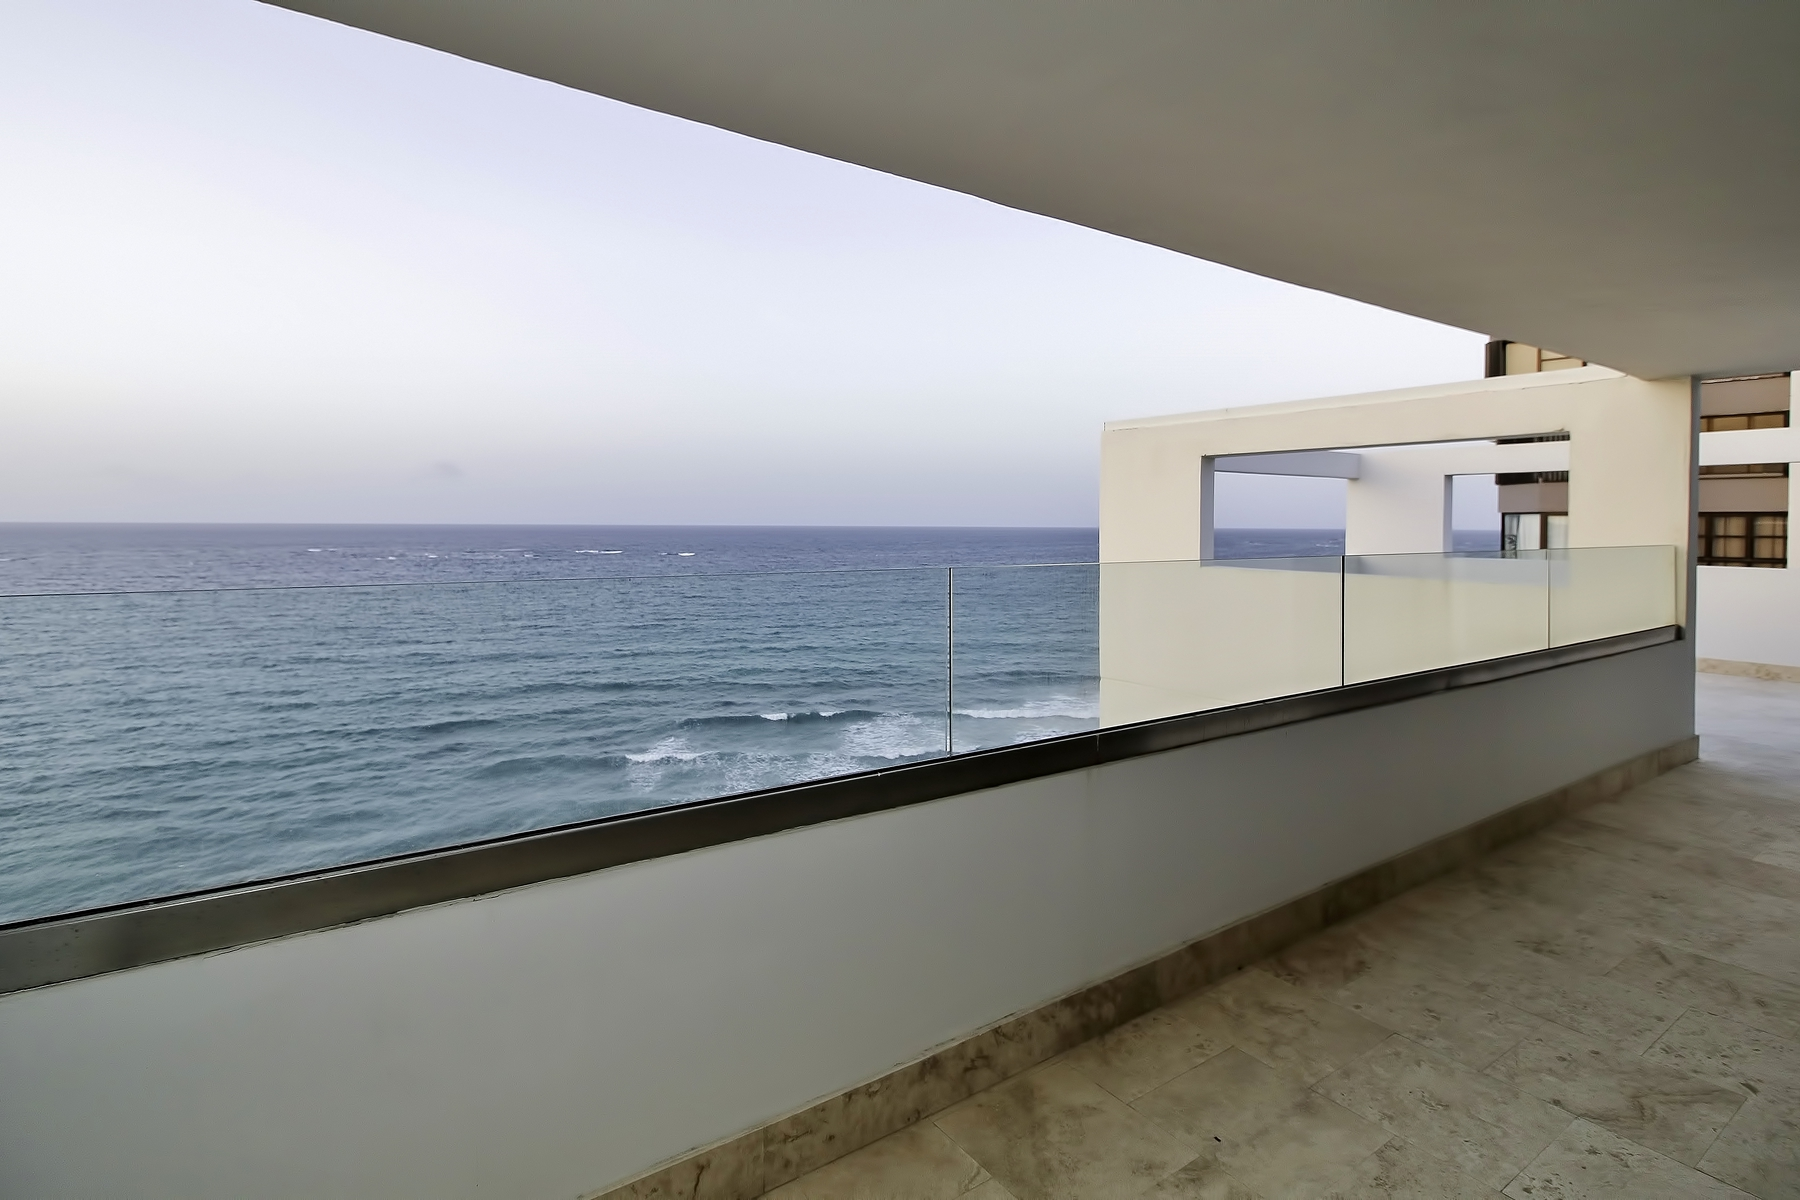 Additional photo for property listing at Remarkable Oceanfront Penthouse in Condado Beach Calle Mauel Rodriguez Serra & Paseo Don Juan PH 1101 San Juan, Puerto Rico 00907 Puerto Rico